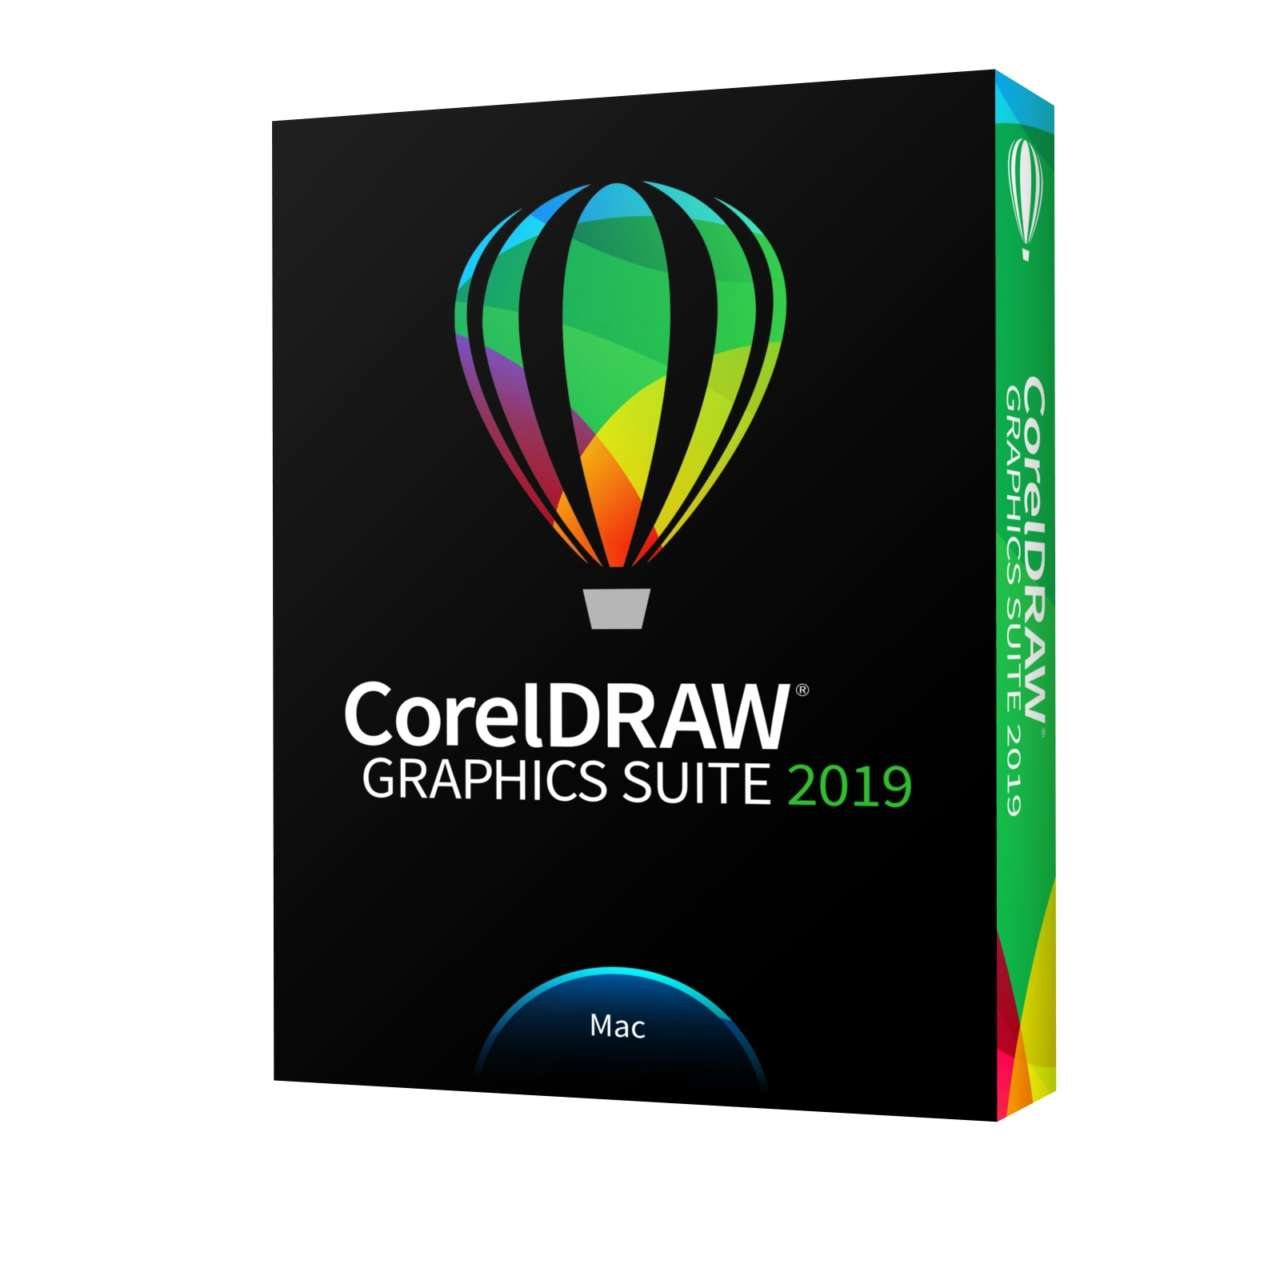 CorelDRAW Graphics Suite 2019 for Mac Left